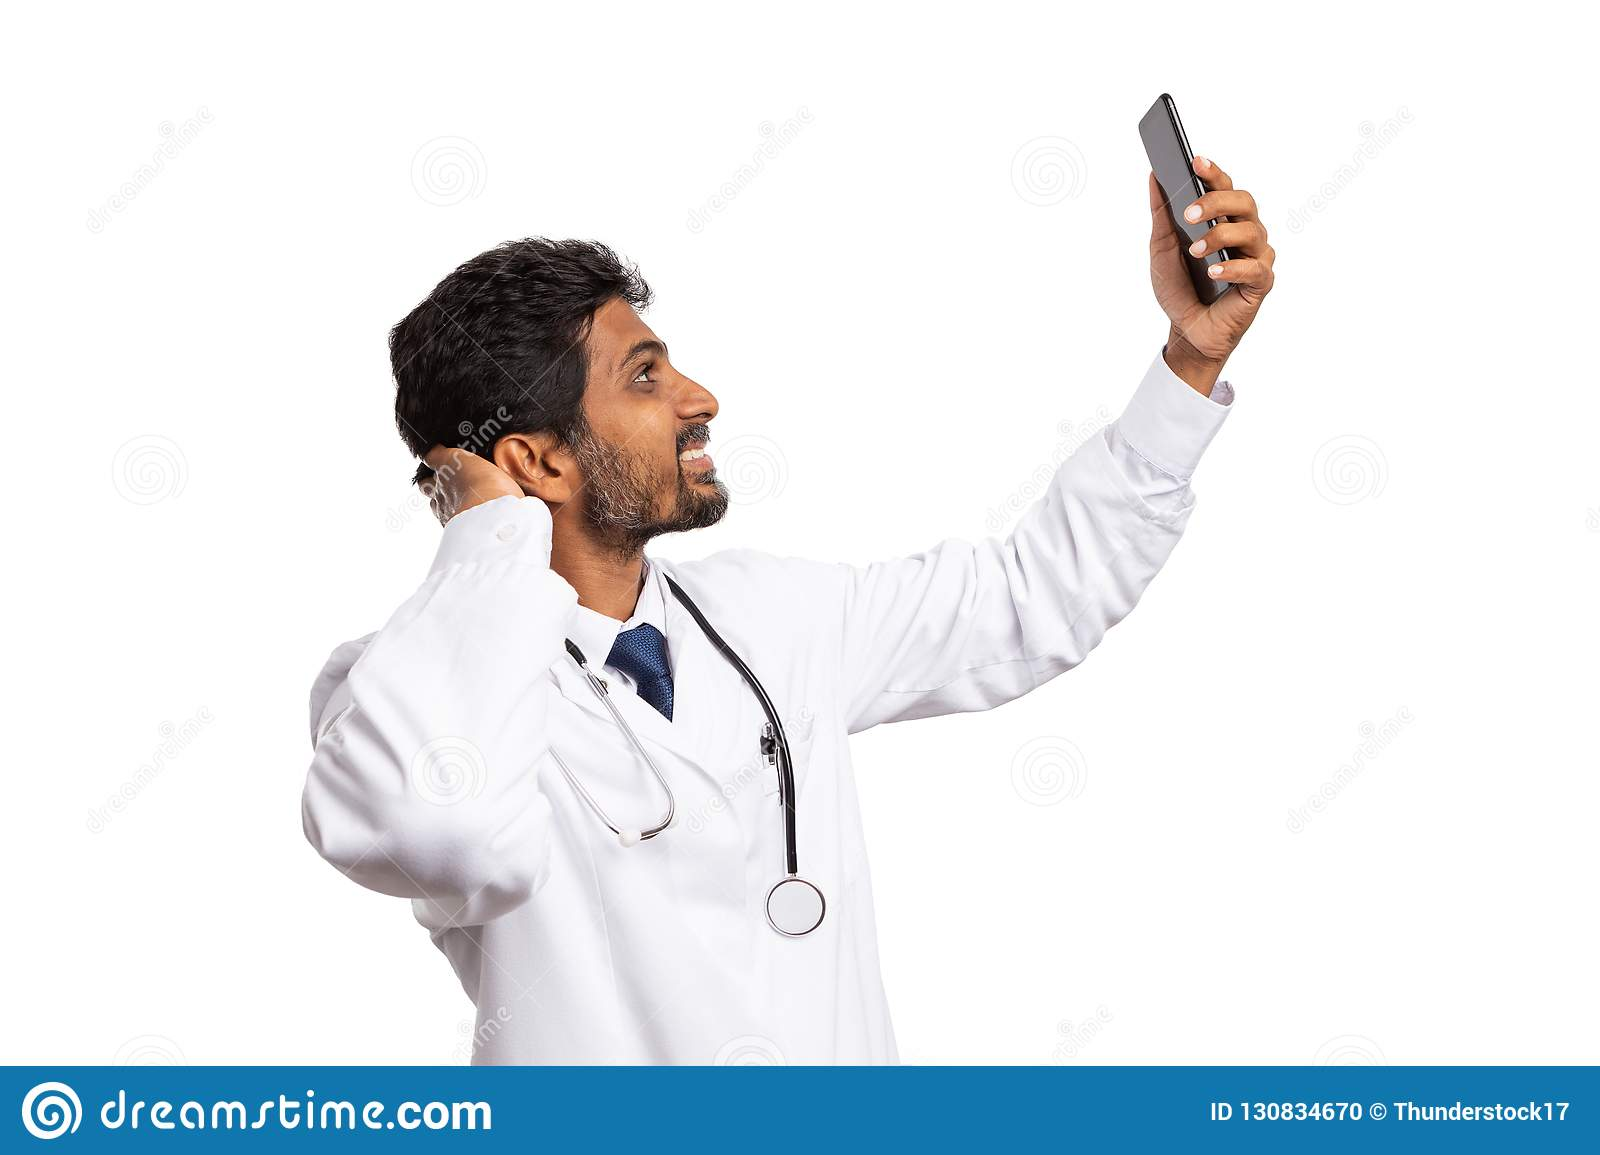 Doctor taking selfie with phone